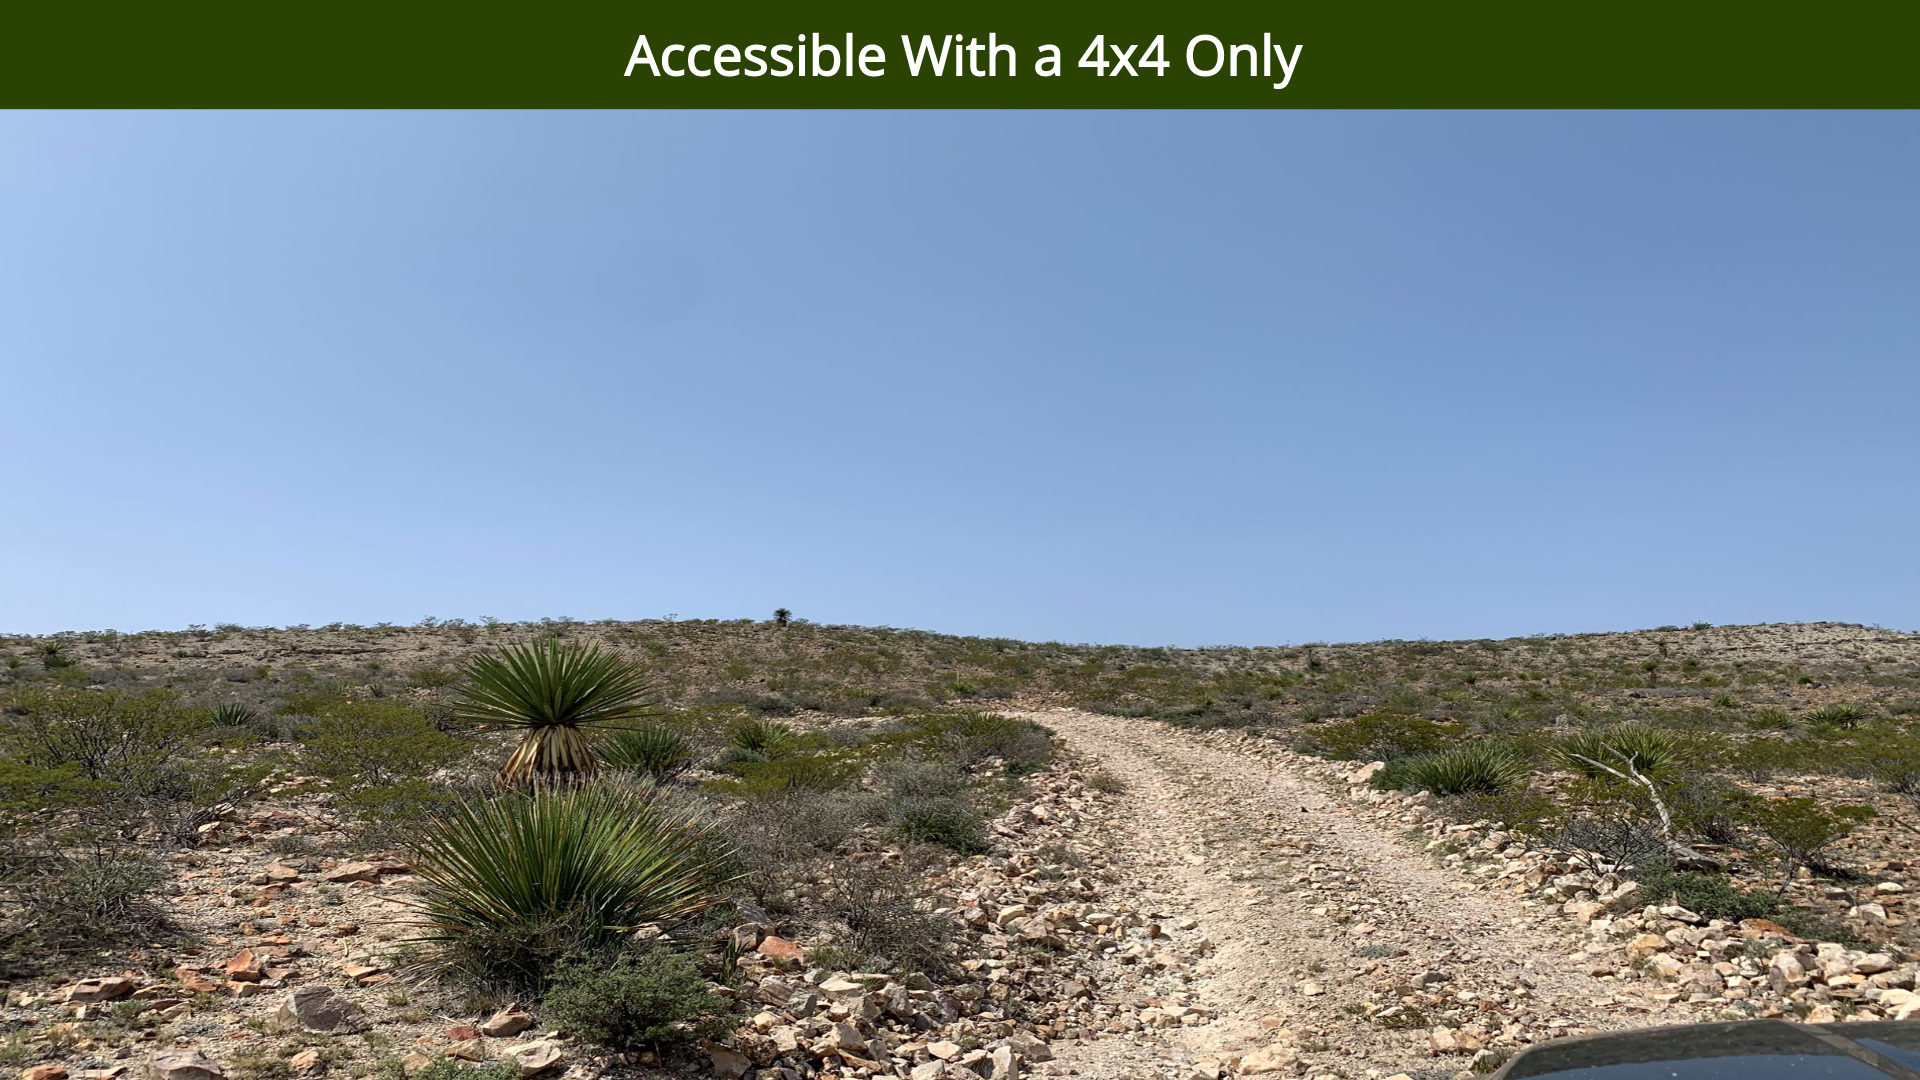 Accessible With a 4x4 Only